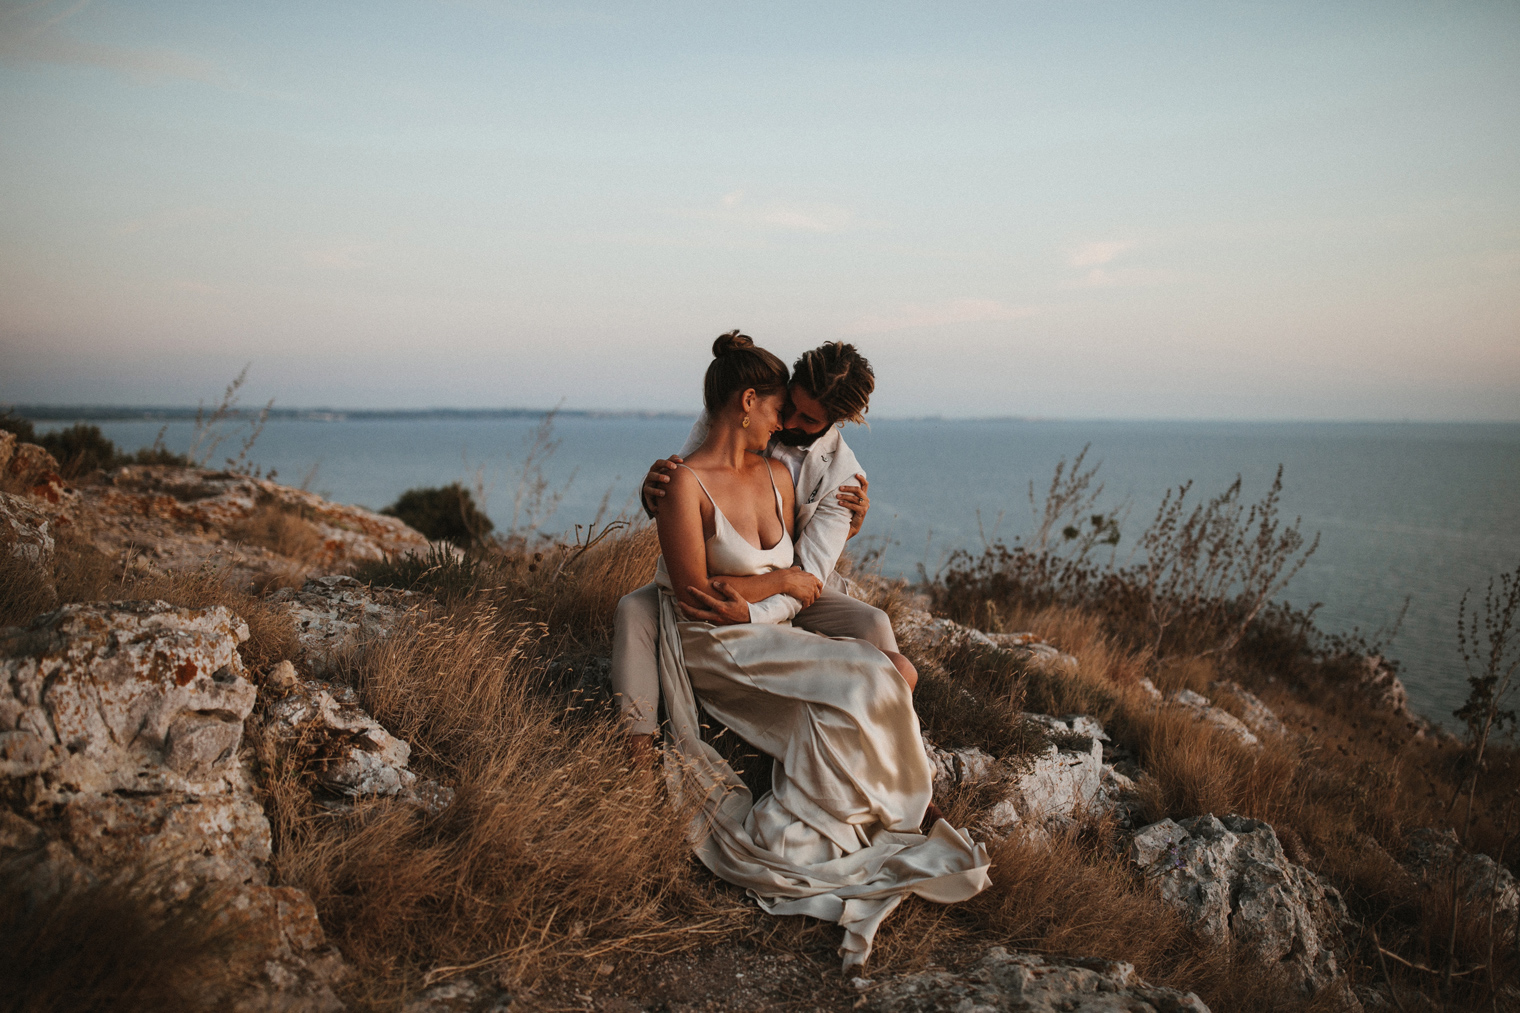 intimate wedding portrait of couple sitting next to the ocean in Puglia after their intimate Italian wedding in Gallipoli